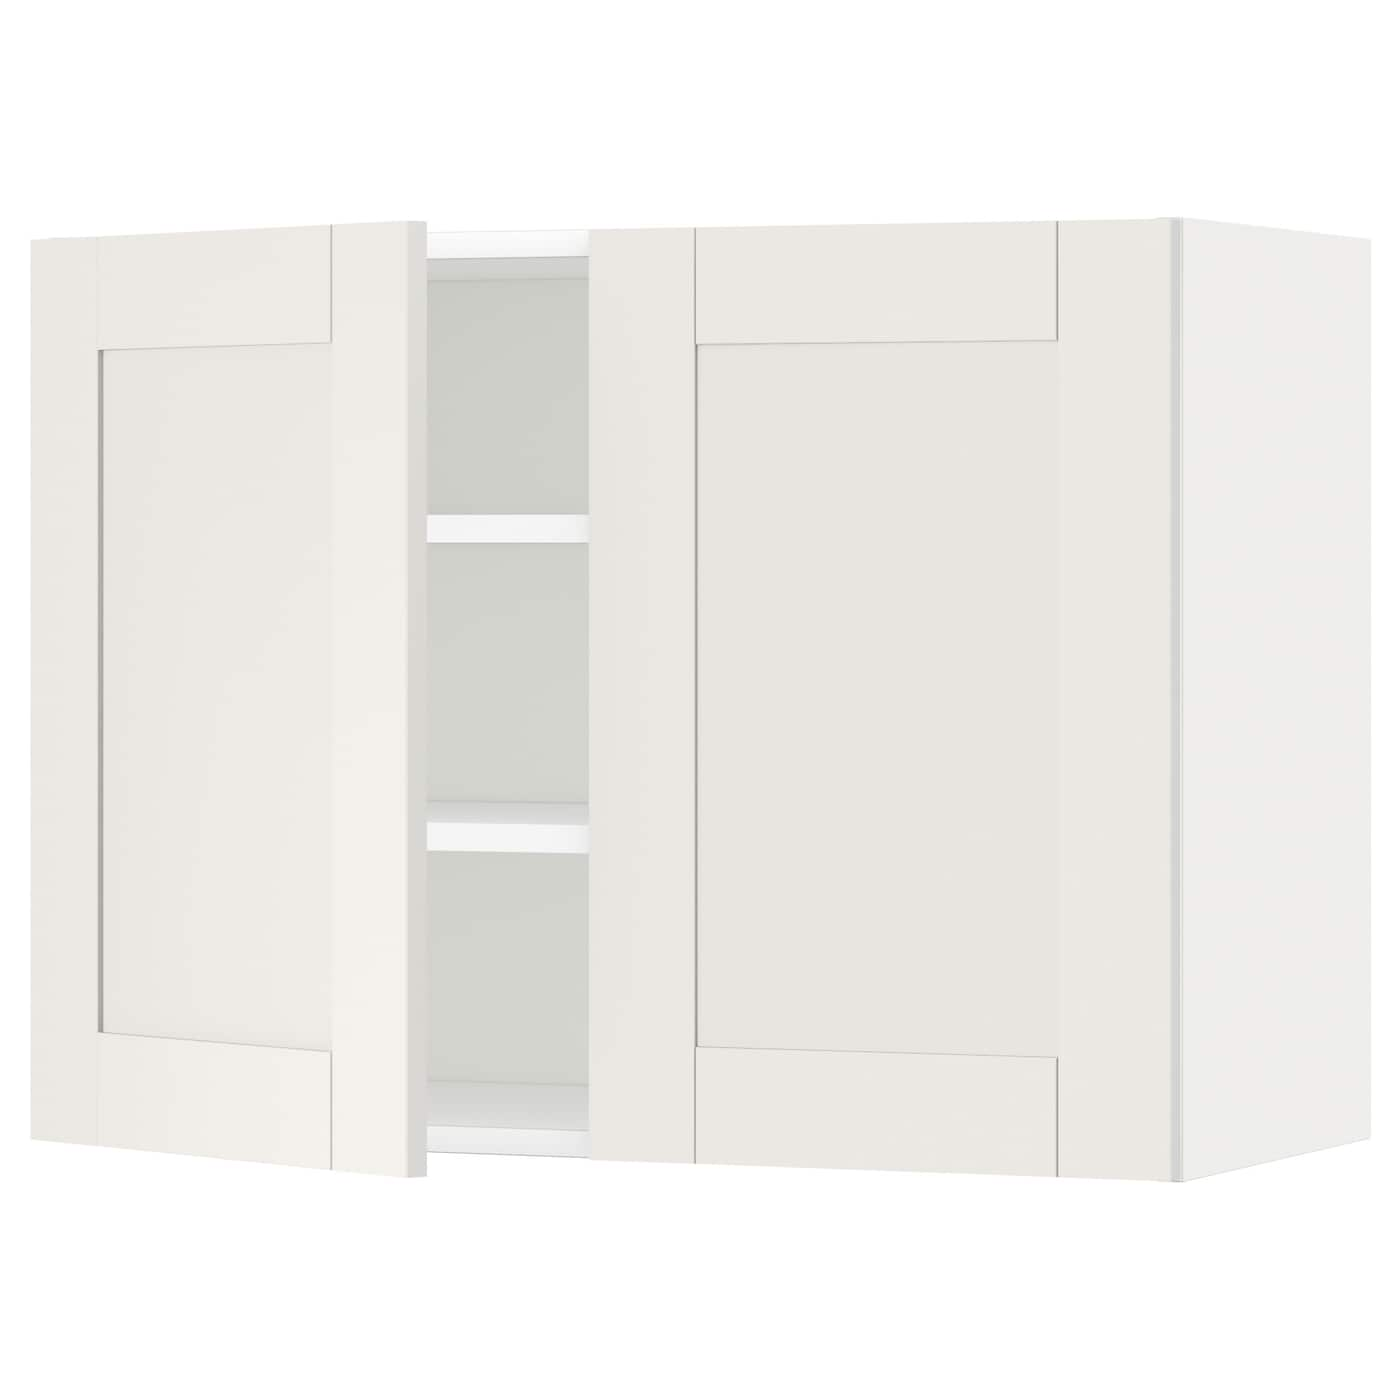 metod wall cabinet with shelves 2 doors white s vedal white 80x60 cm ikea. Black Bedroom Furniture Sets. Home Design Ideas